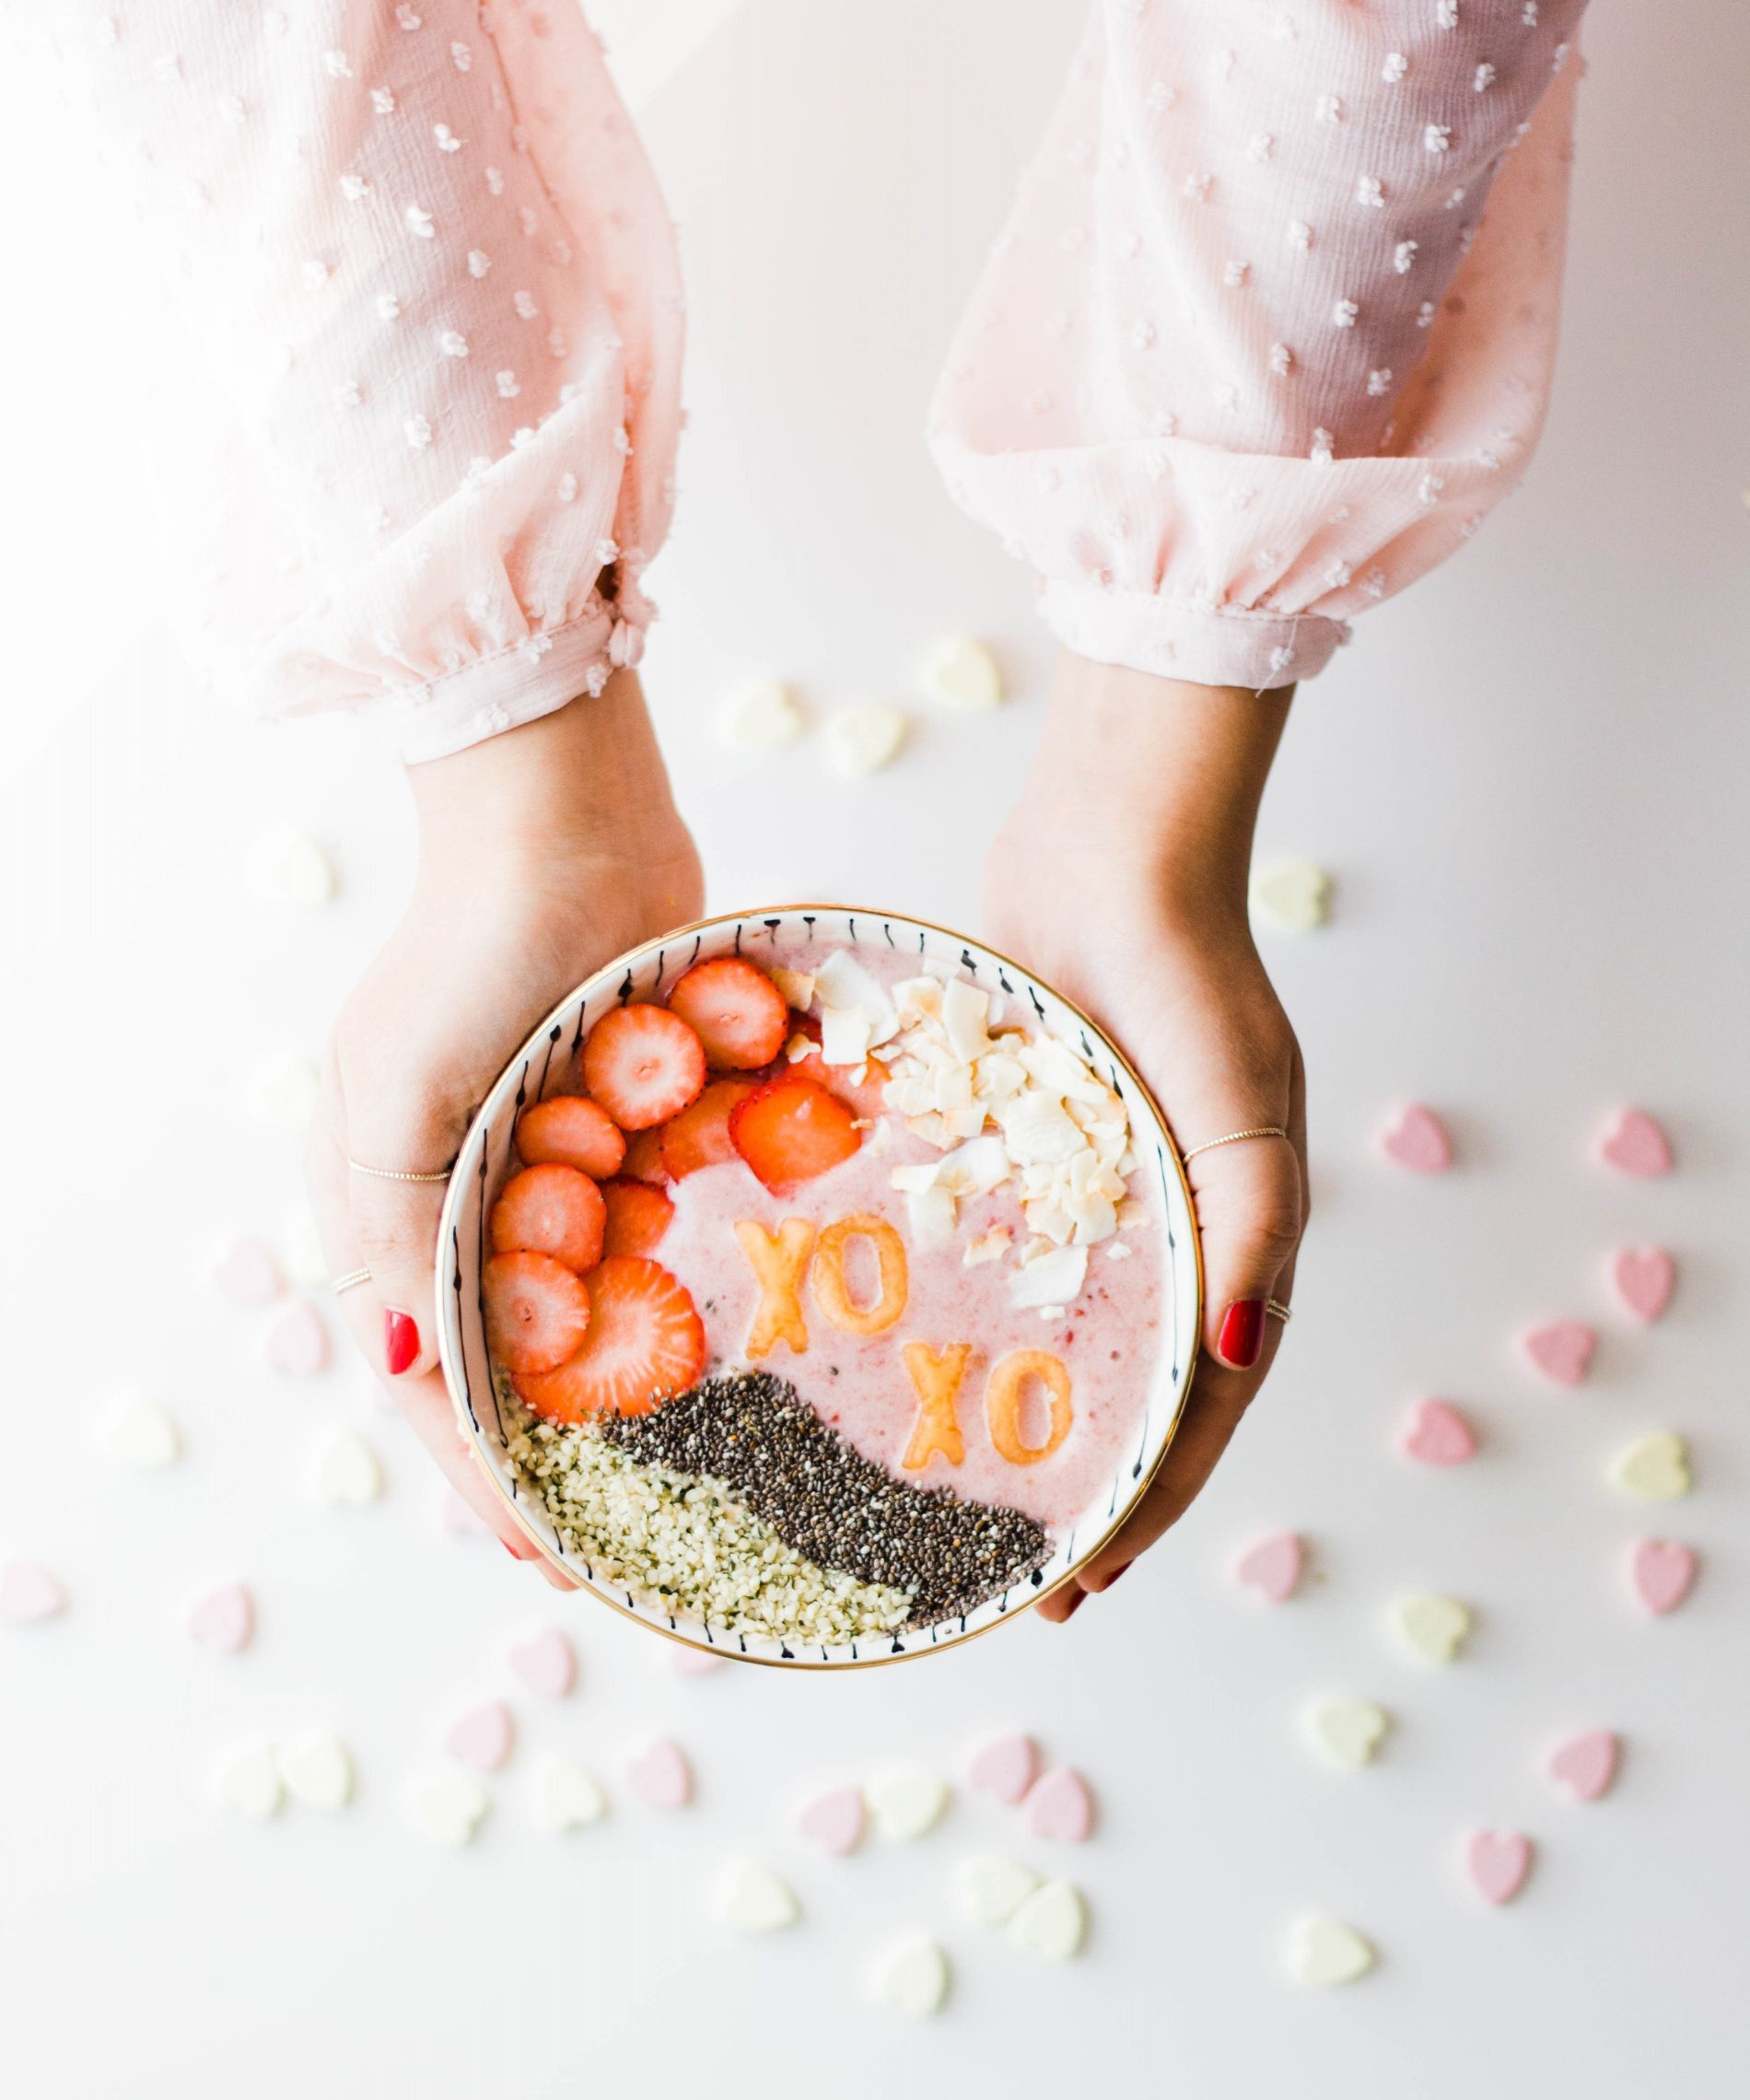 Valentine's Day Smoothies Bowl— This Strawberry-Banana-Coconut Smoothie bowl with letter-shaped fruits, was inspired by the little candy hearts with sweet messages. It makes for the perfect V-day healthy treat!